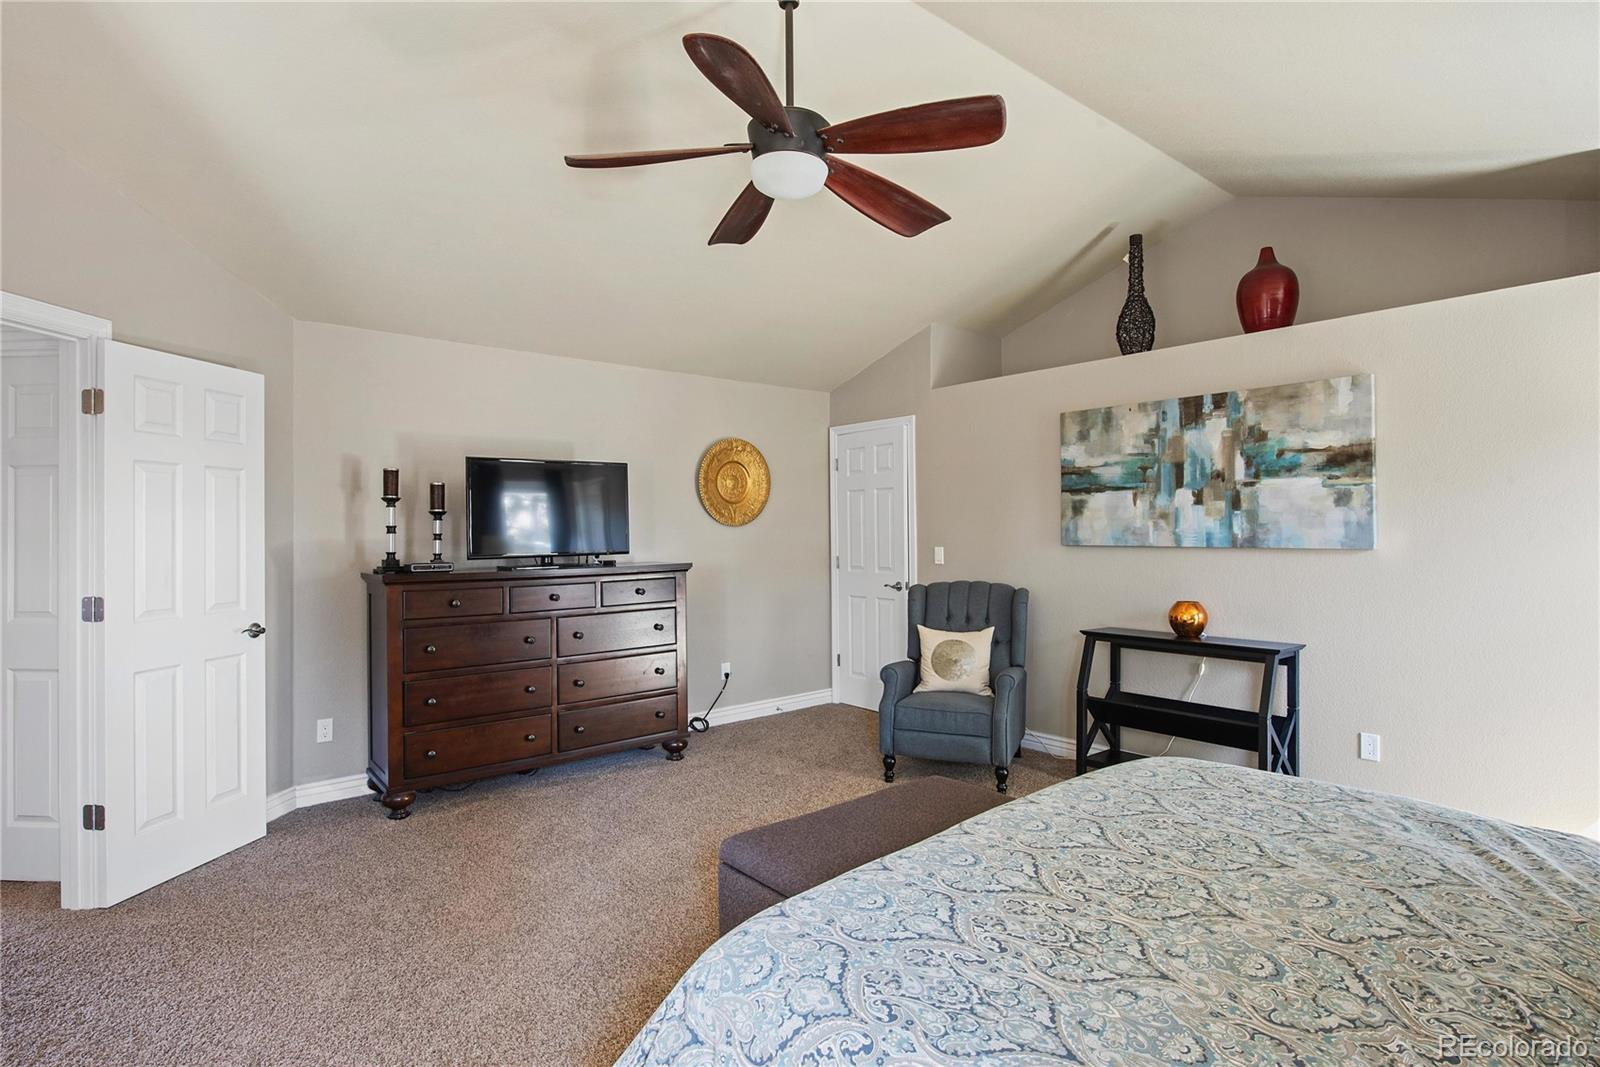 MLS# 7778150 - 19 - 16652 W 55th Place, Golden, CO 80403